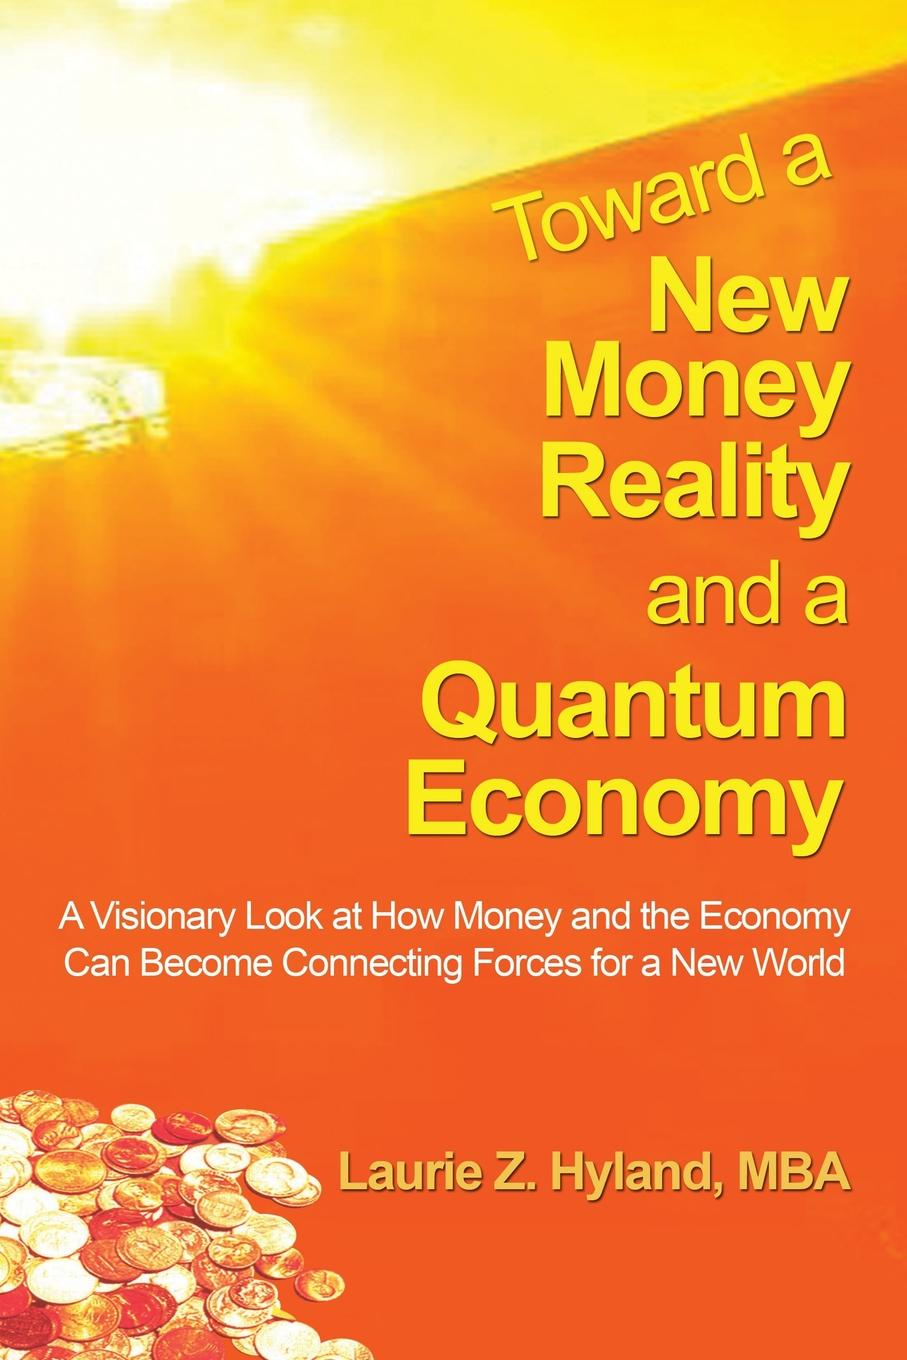 Laurie Z. Hyland Mba Toward a New Money Reality and a Quantum Economy. A Visionary Look at How Money and the Economy Can Be Connecting Forces for a New World